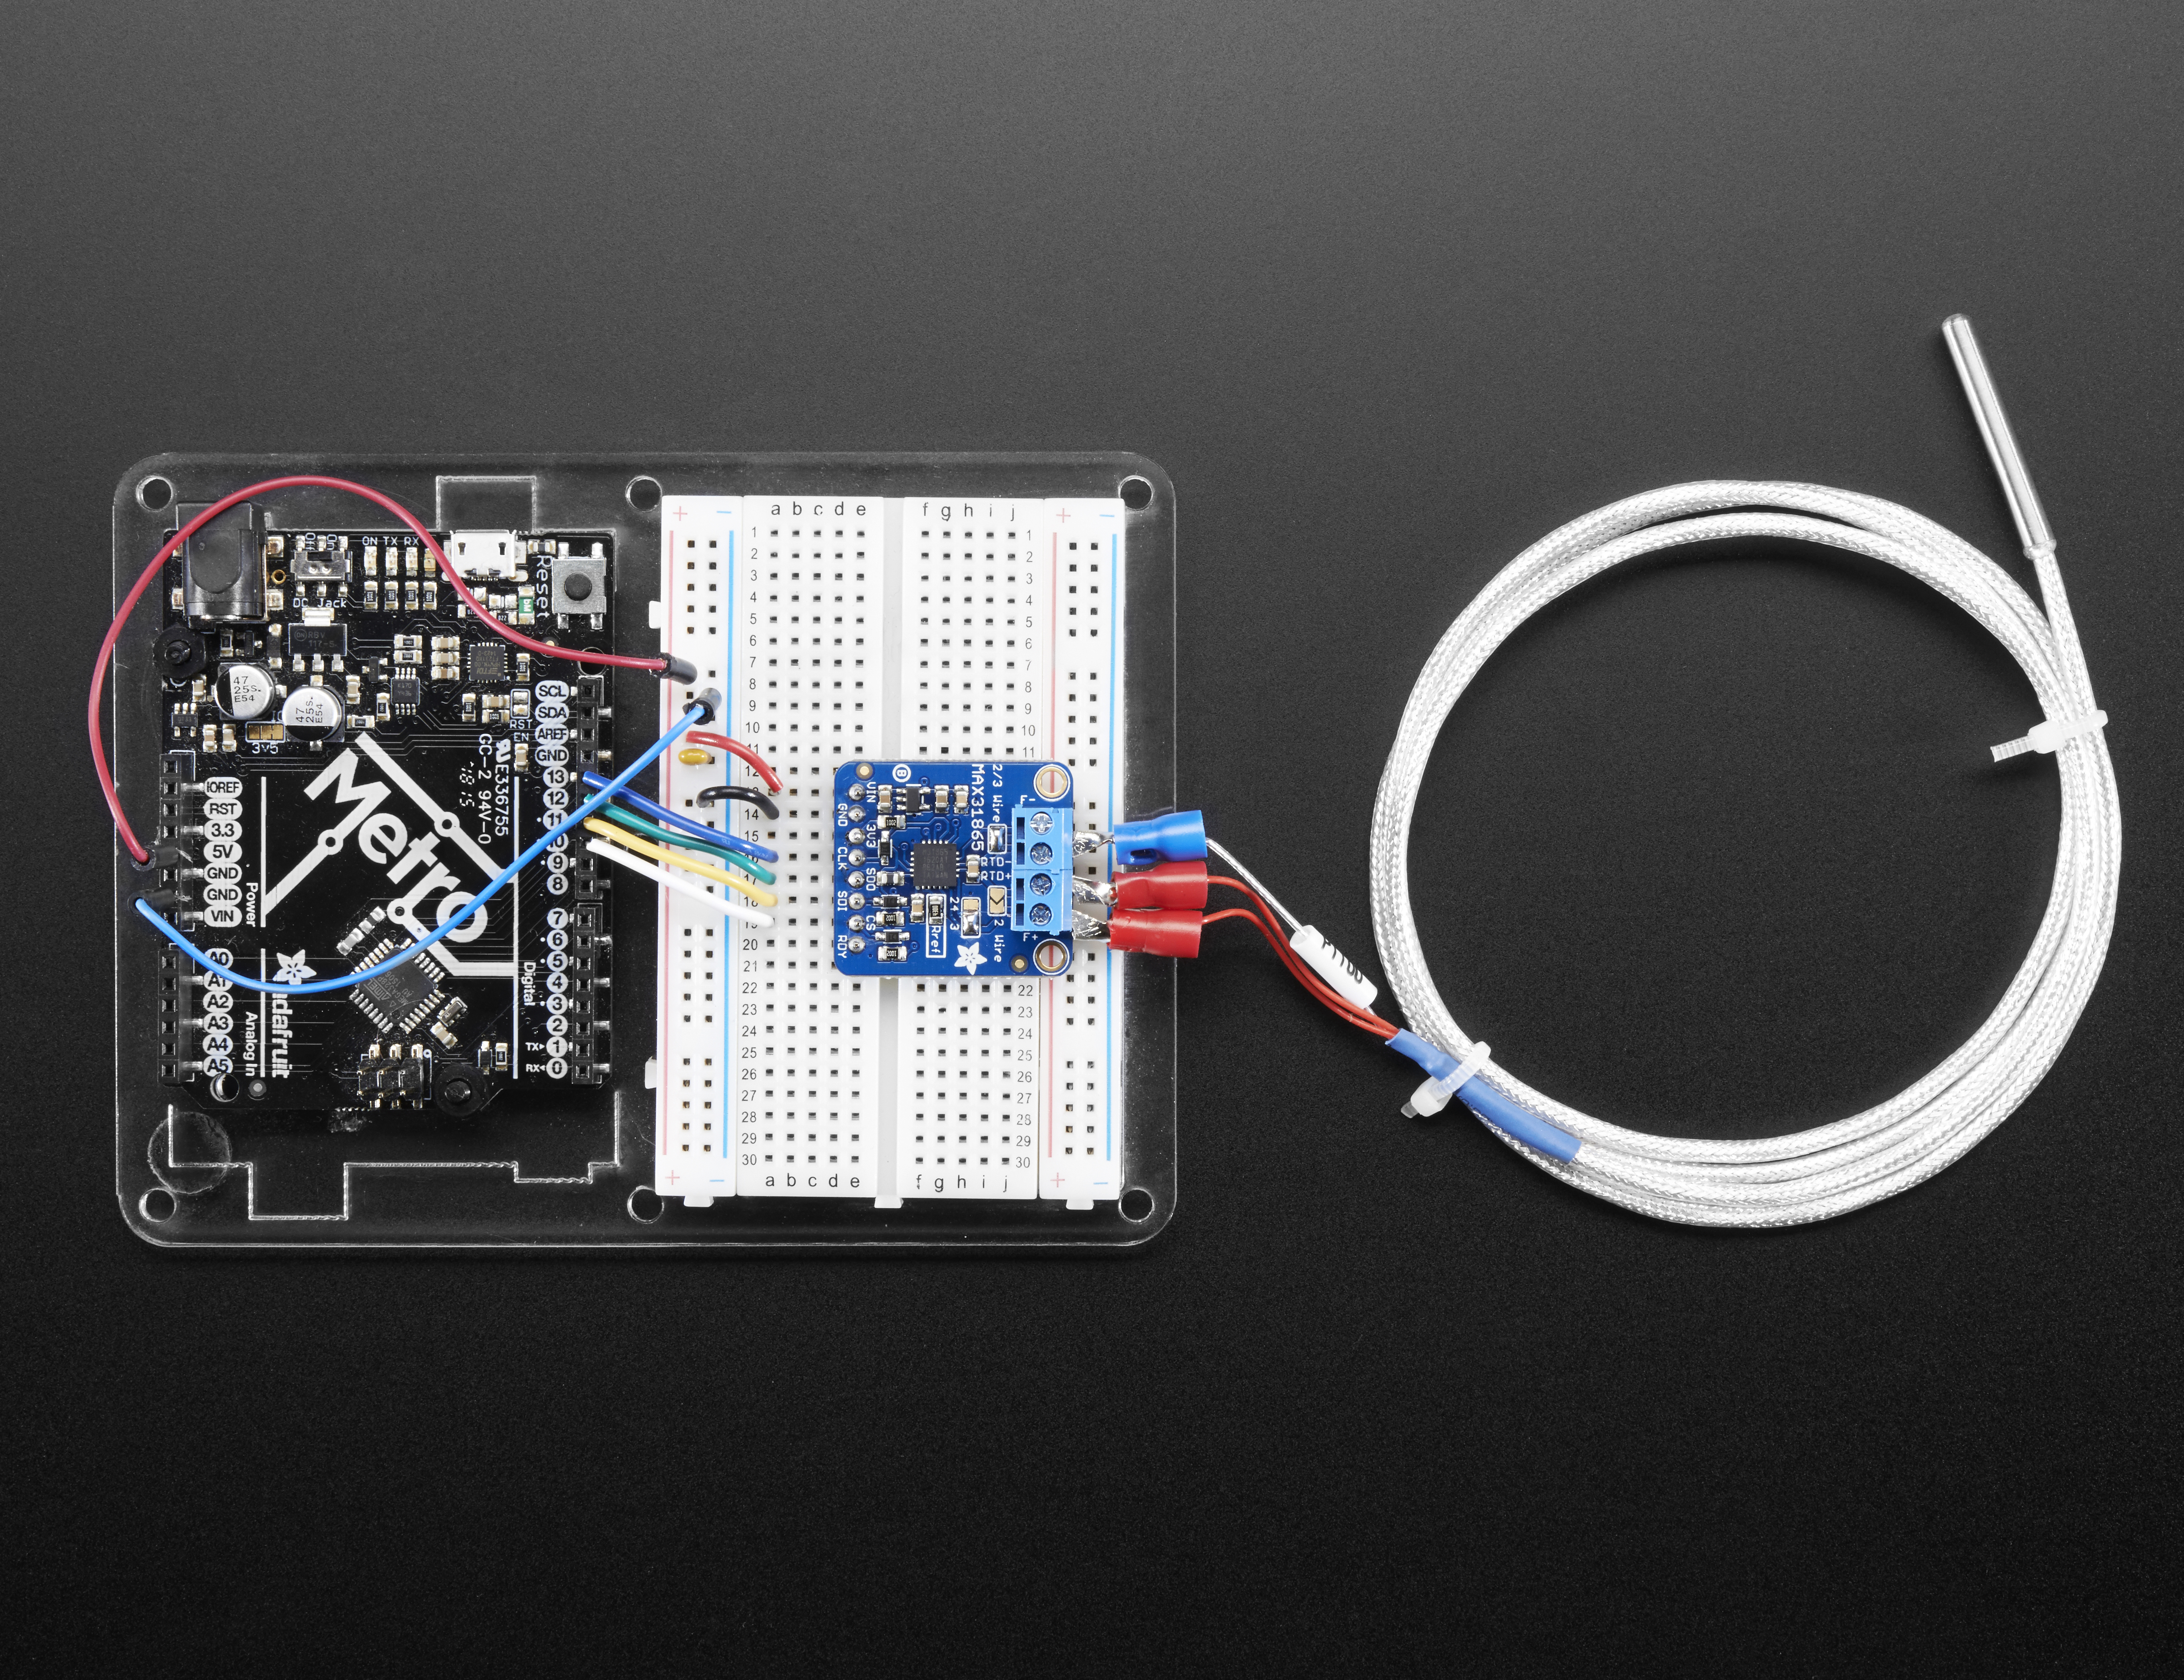 adafruit_products_3328_top_demo_03_ORIG.jpg